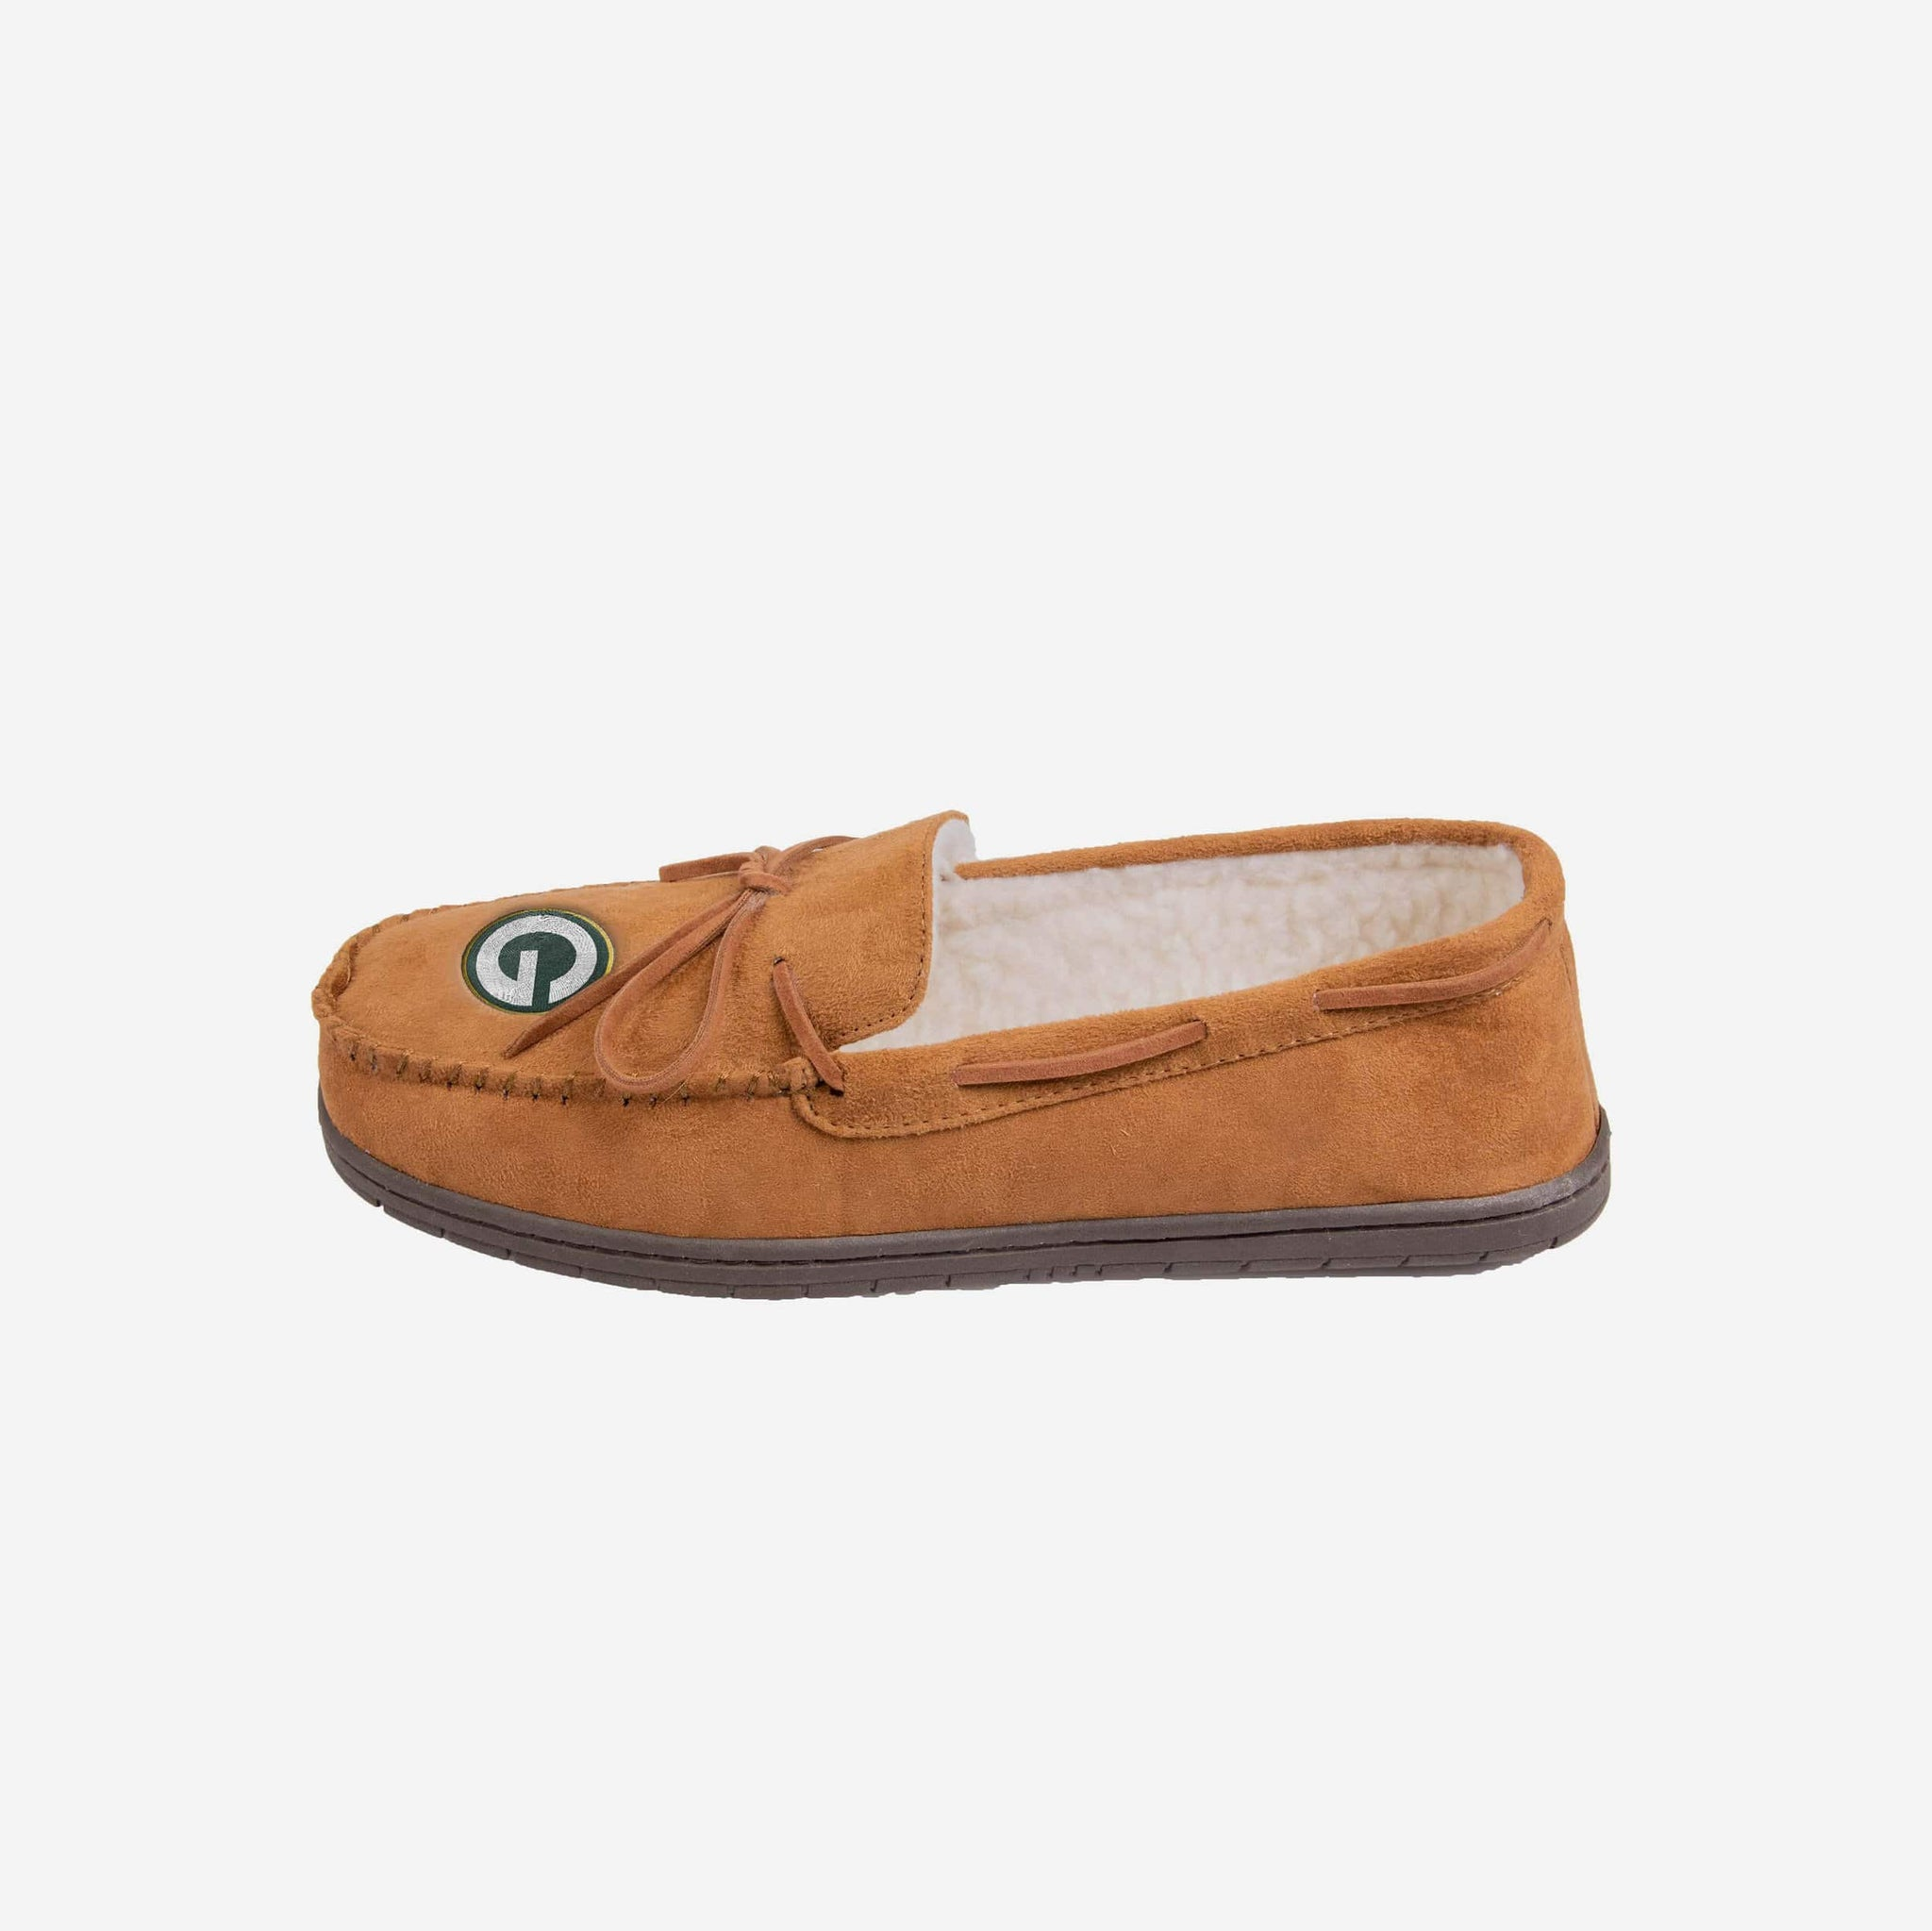 Green Bay Packers Moccasin Slipper